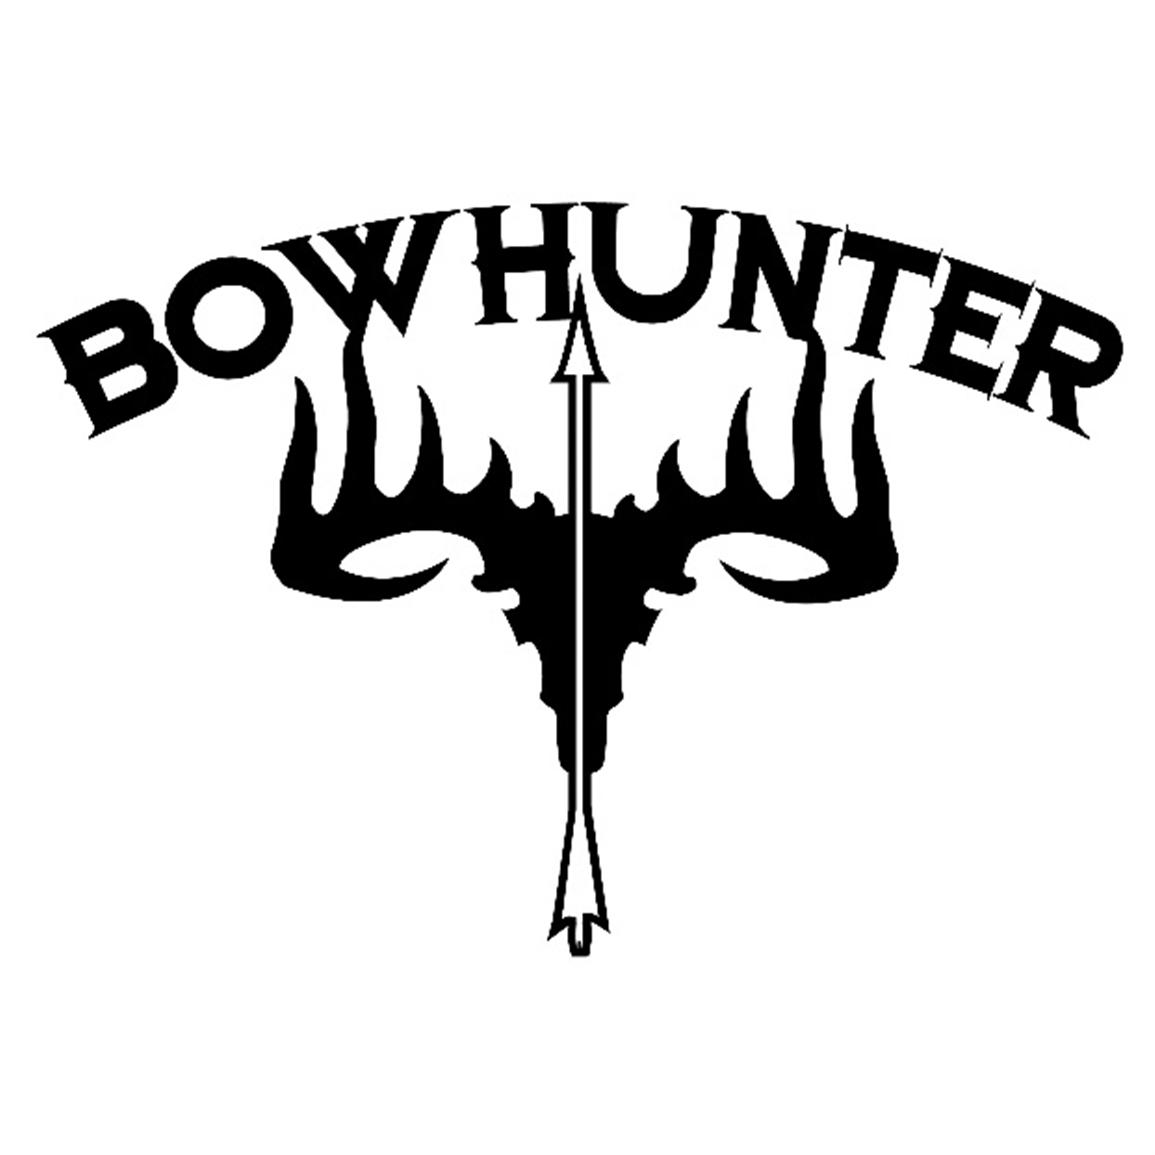 Silhouette Of Bow Hunter